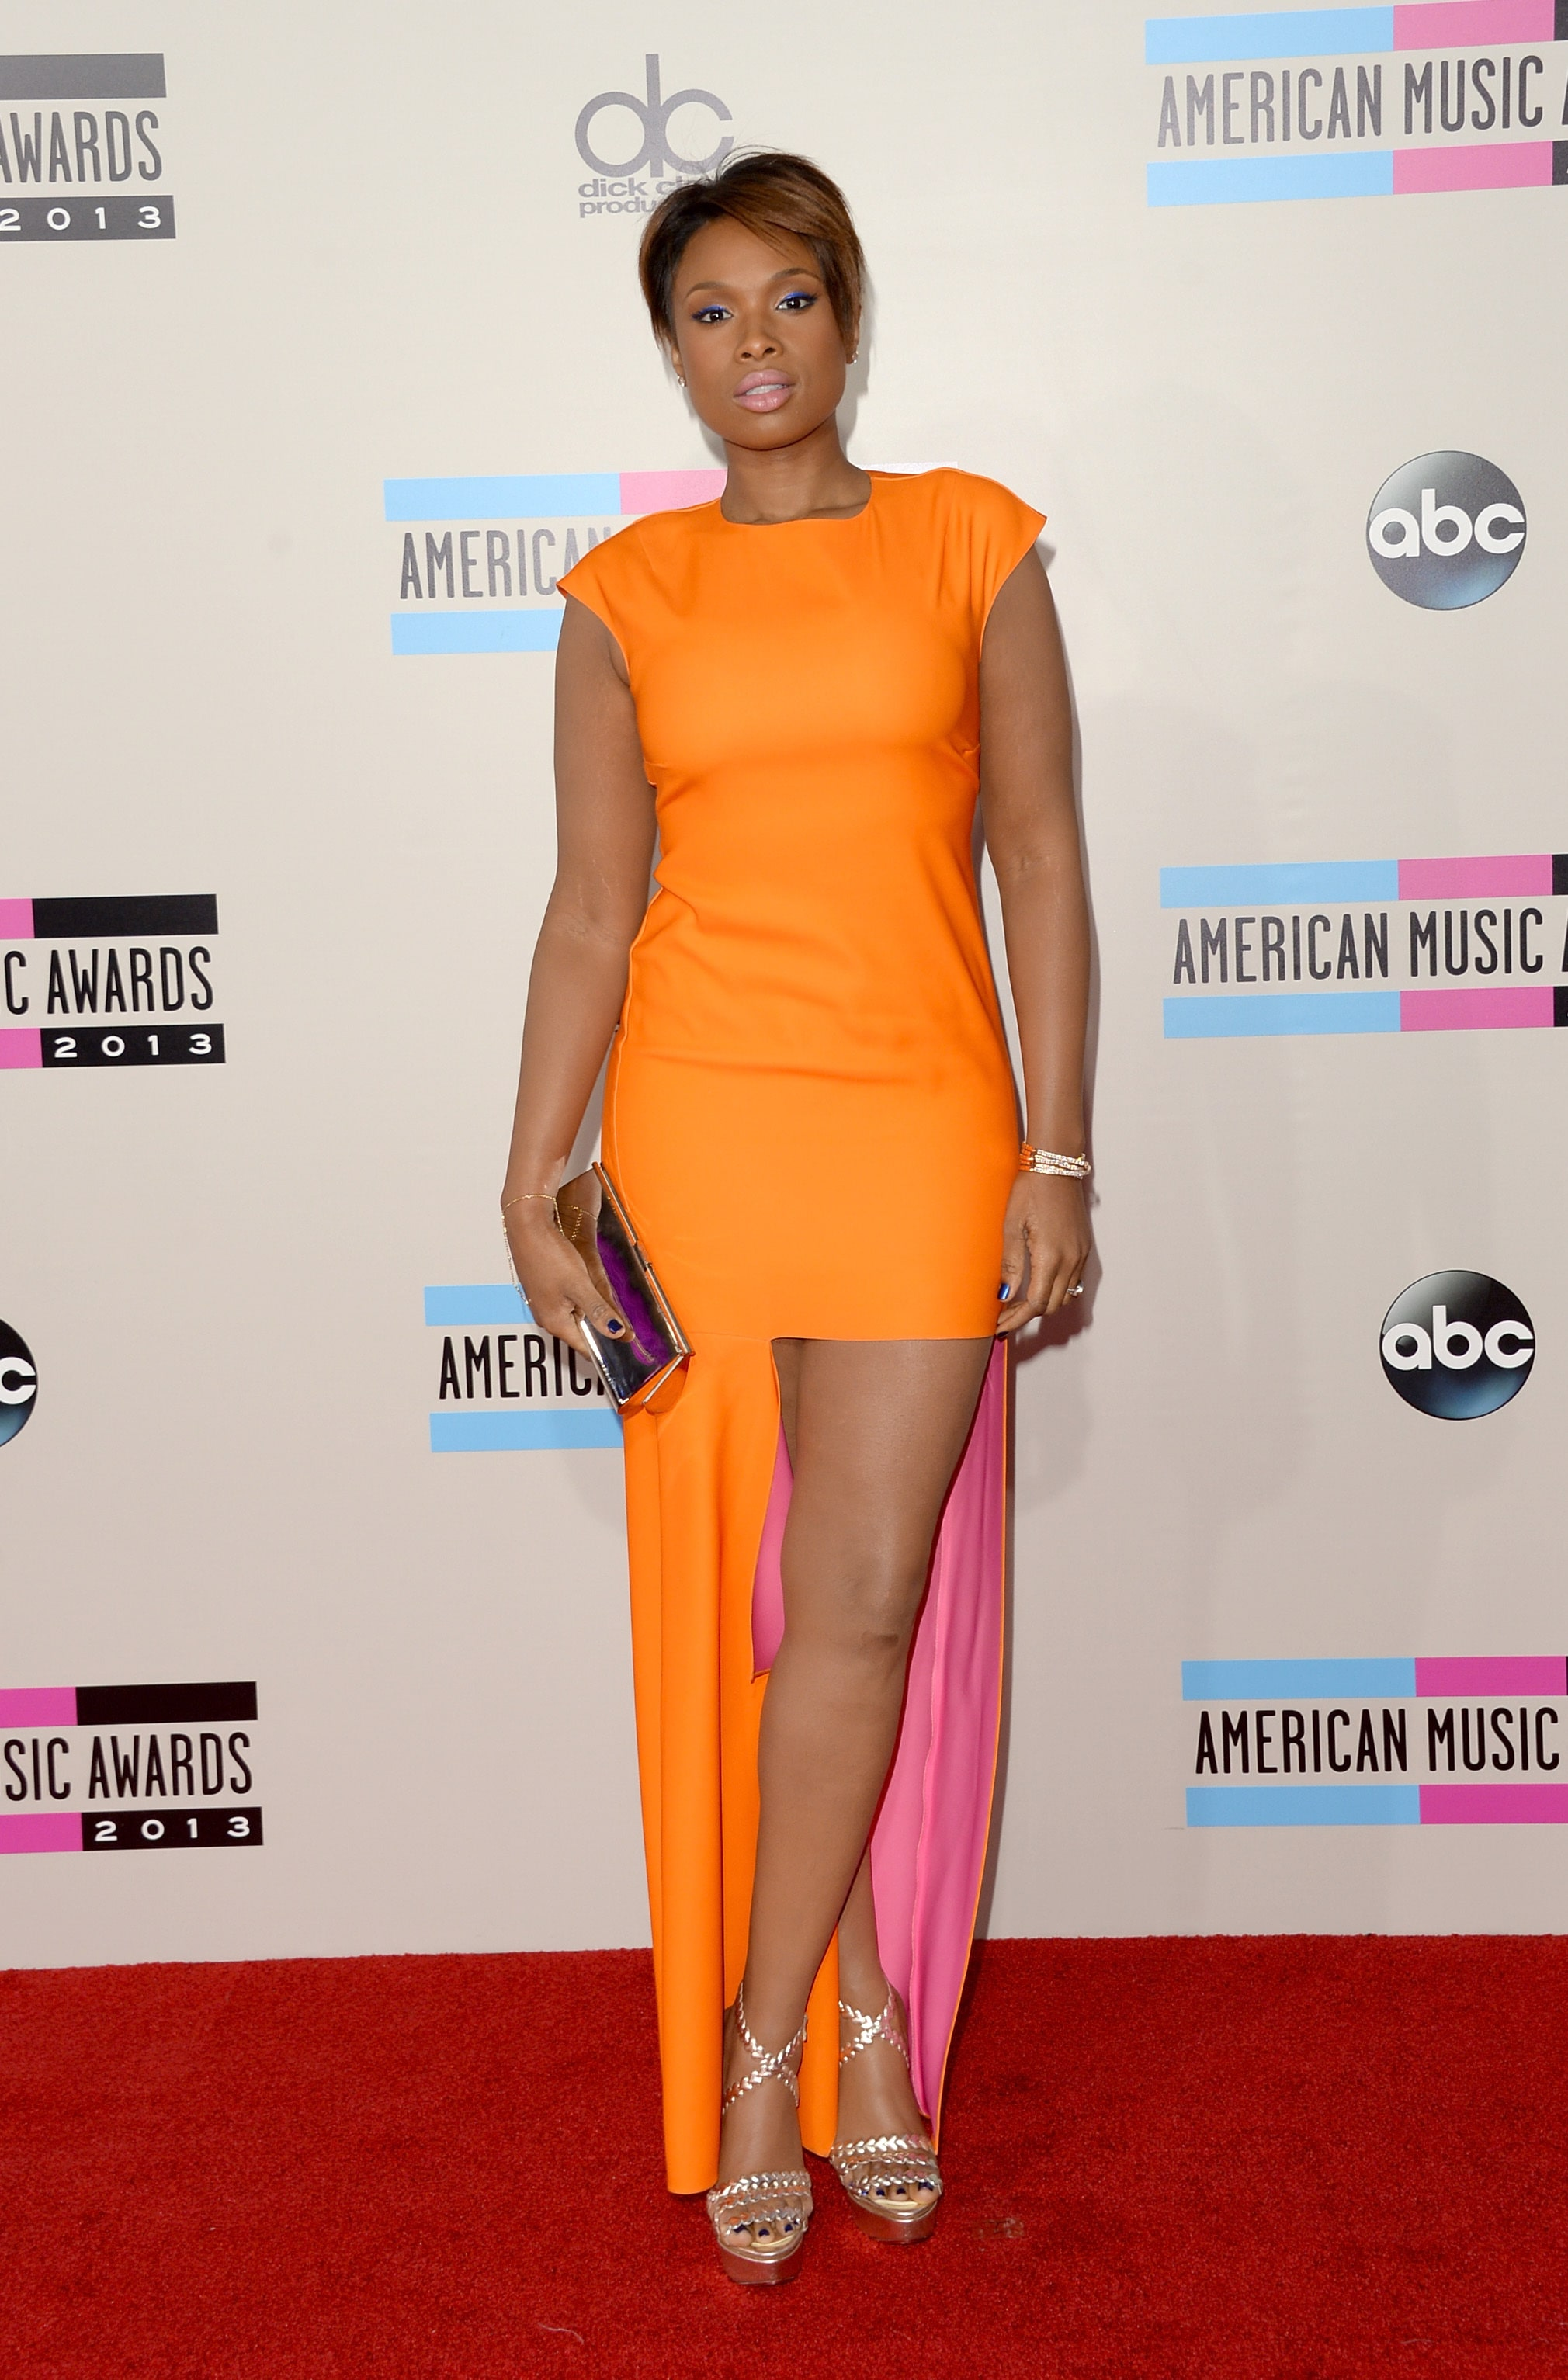 Jennifer Hudson Hot in Orange